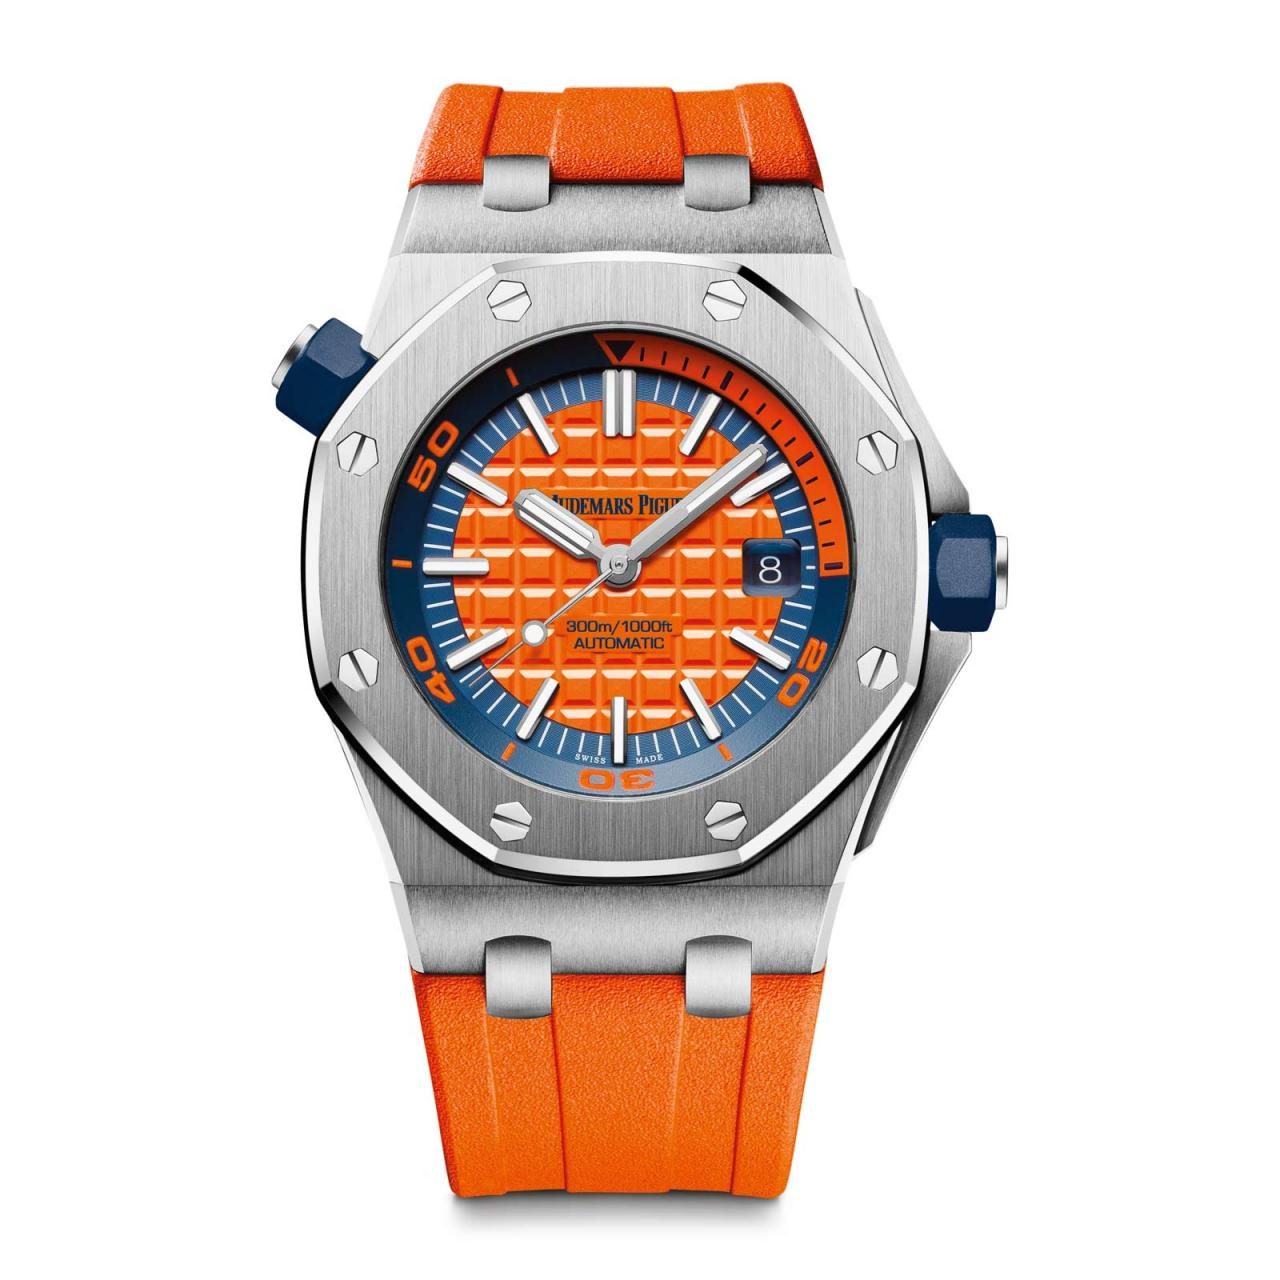 3 hot orange watches for a balmy summer